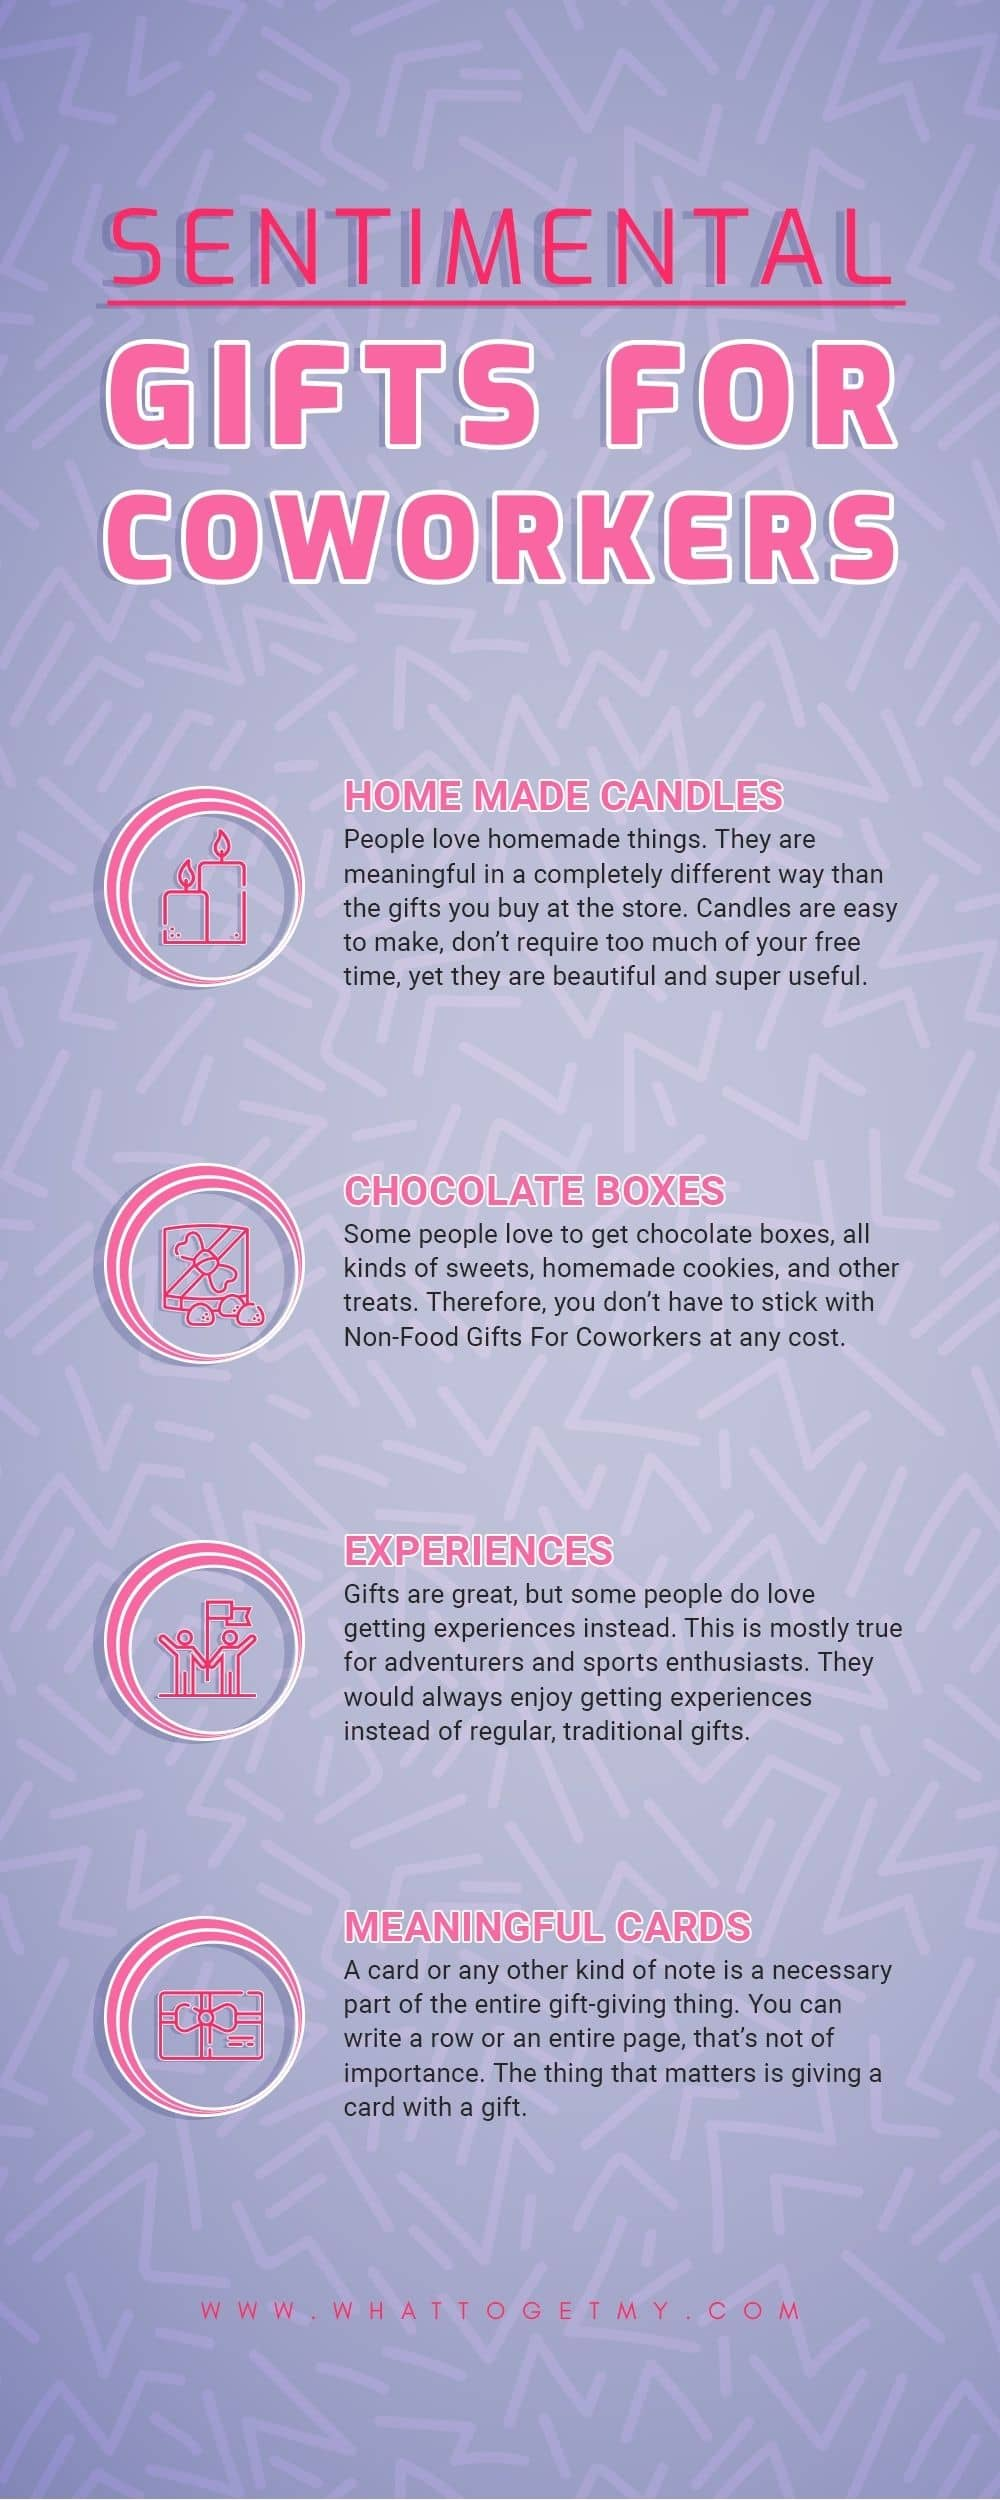 Infographic Sentimental gifts for coworkers